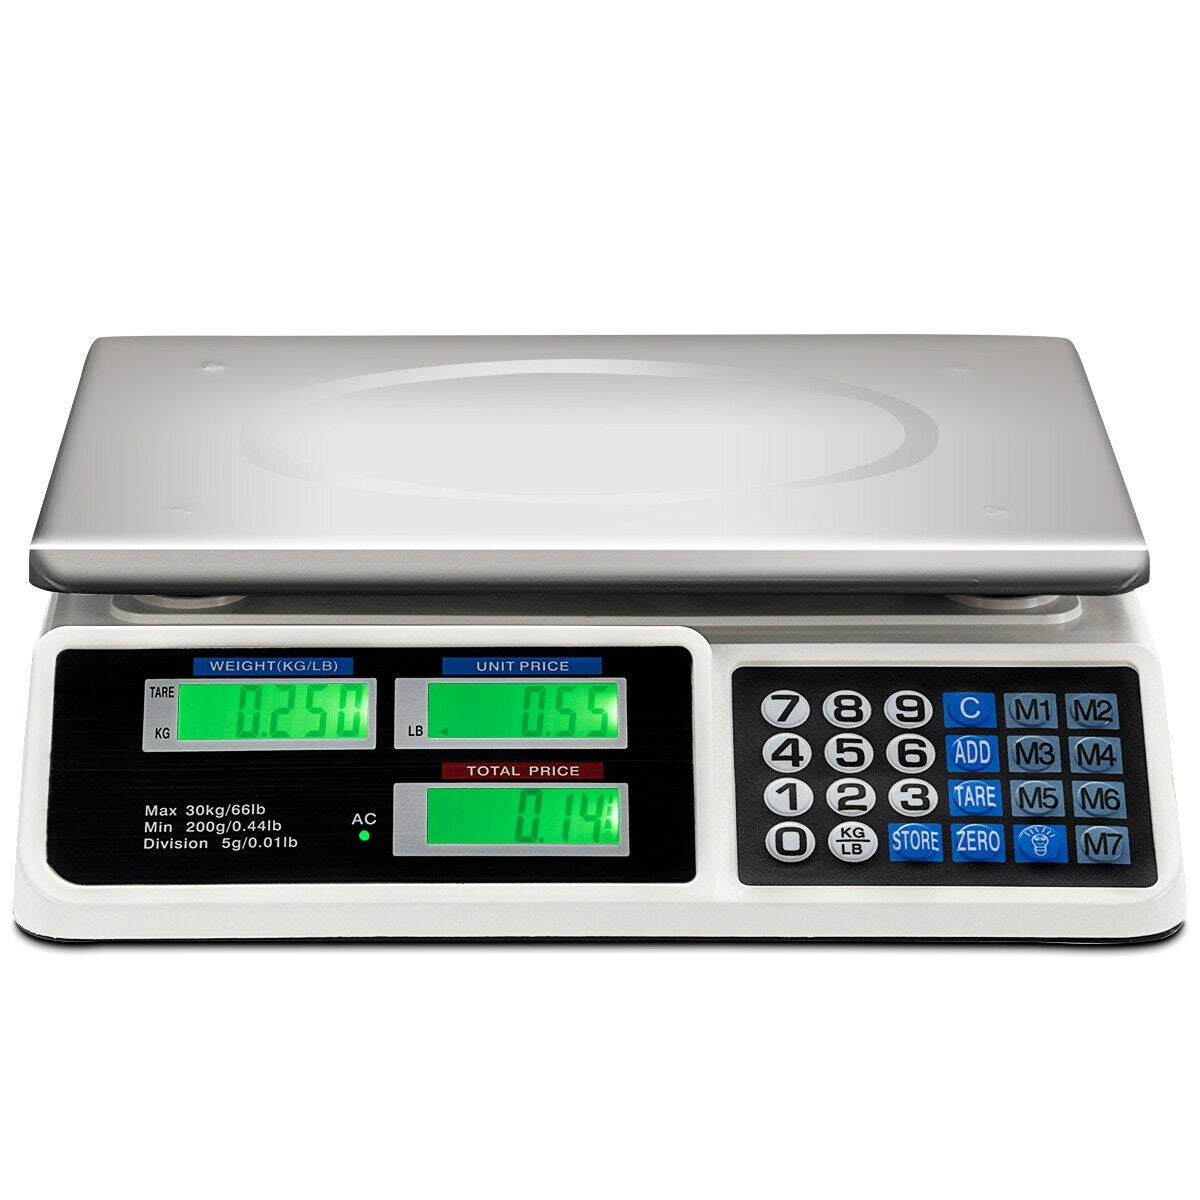 66Lbs Digital Weight Scale Price Computing Retail Count Scale Food Meat  Scales - as pic